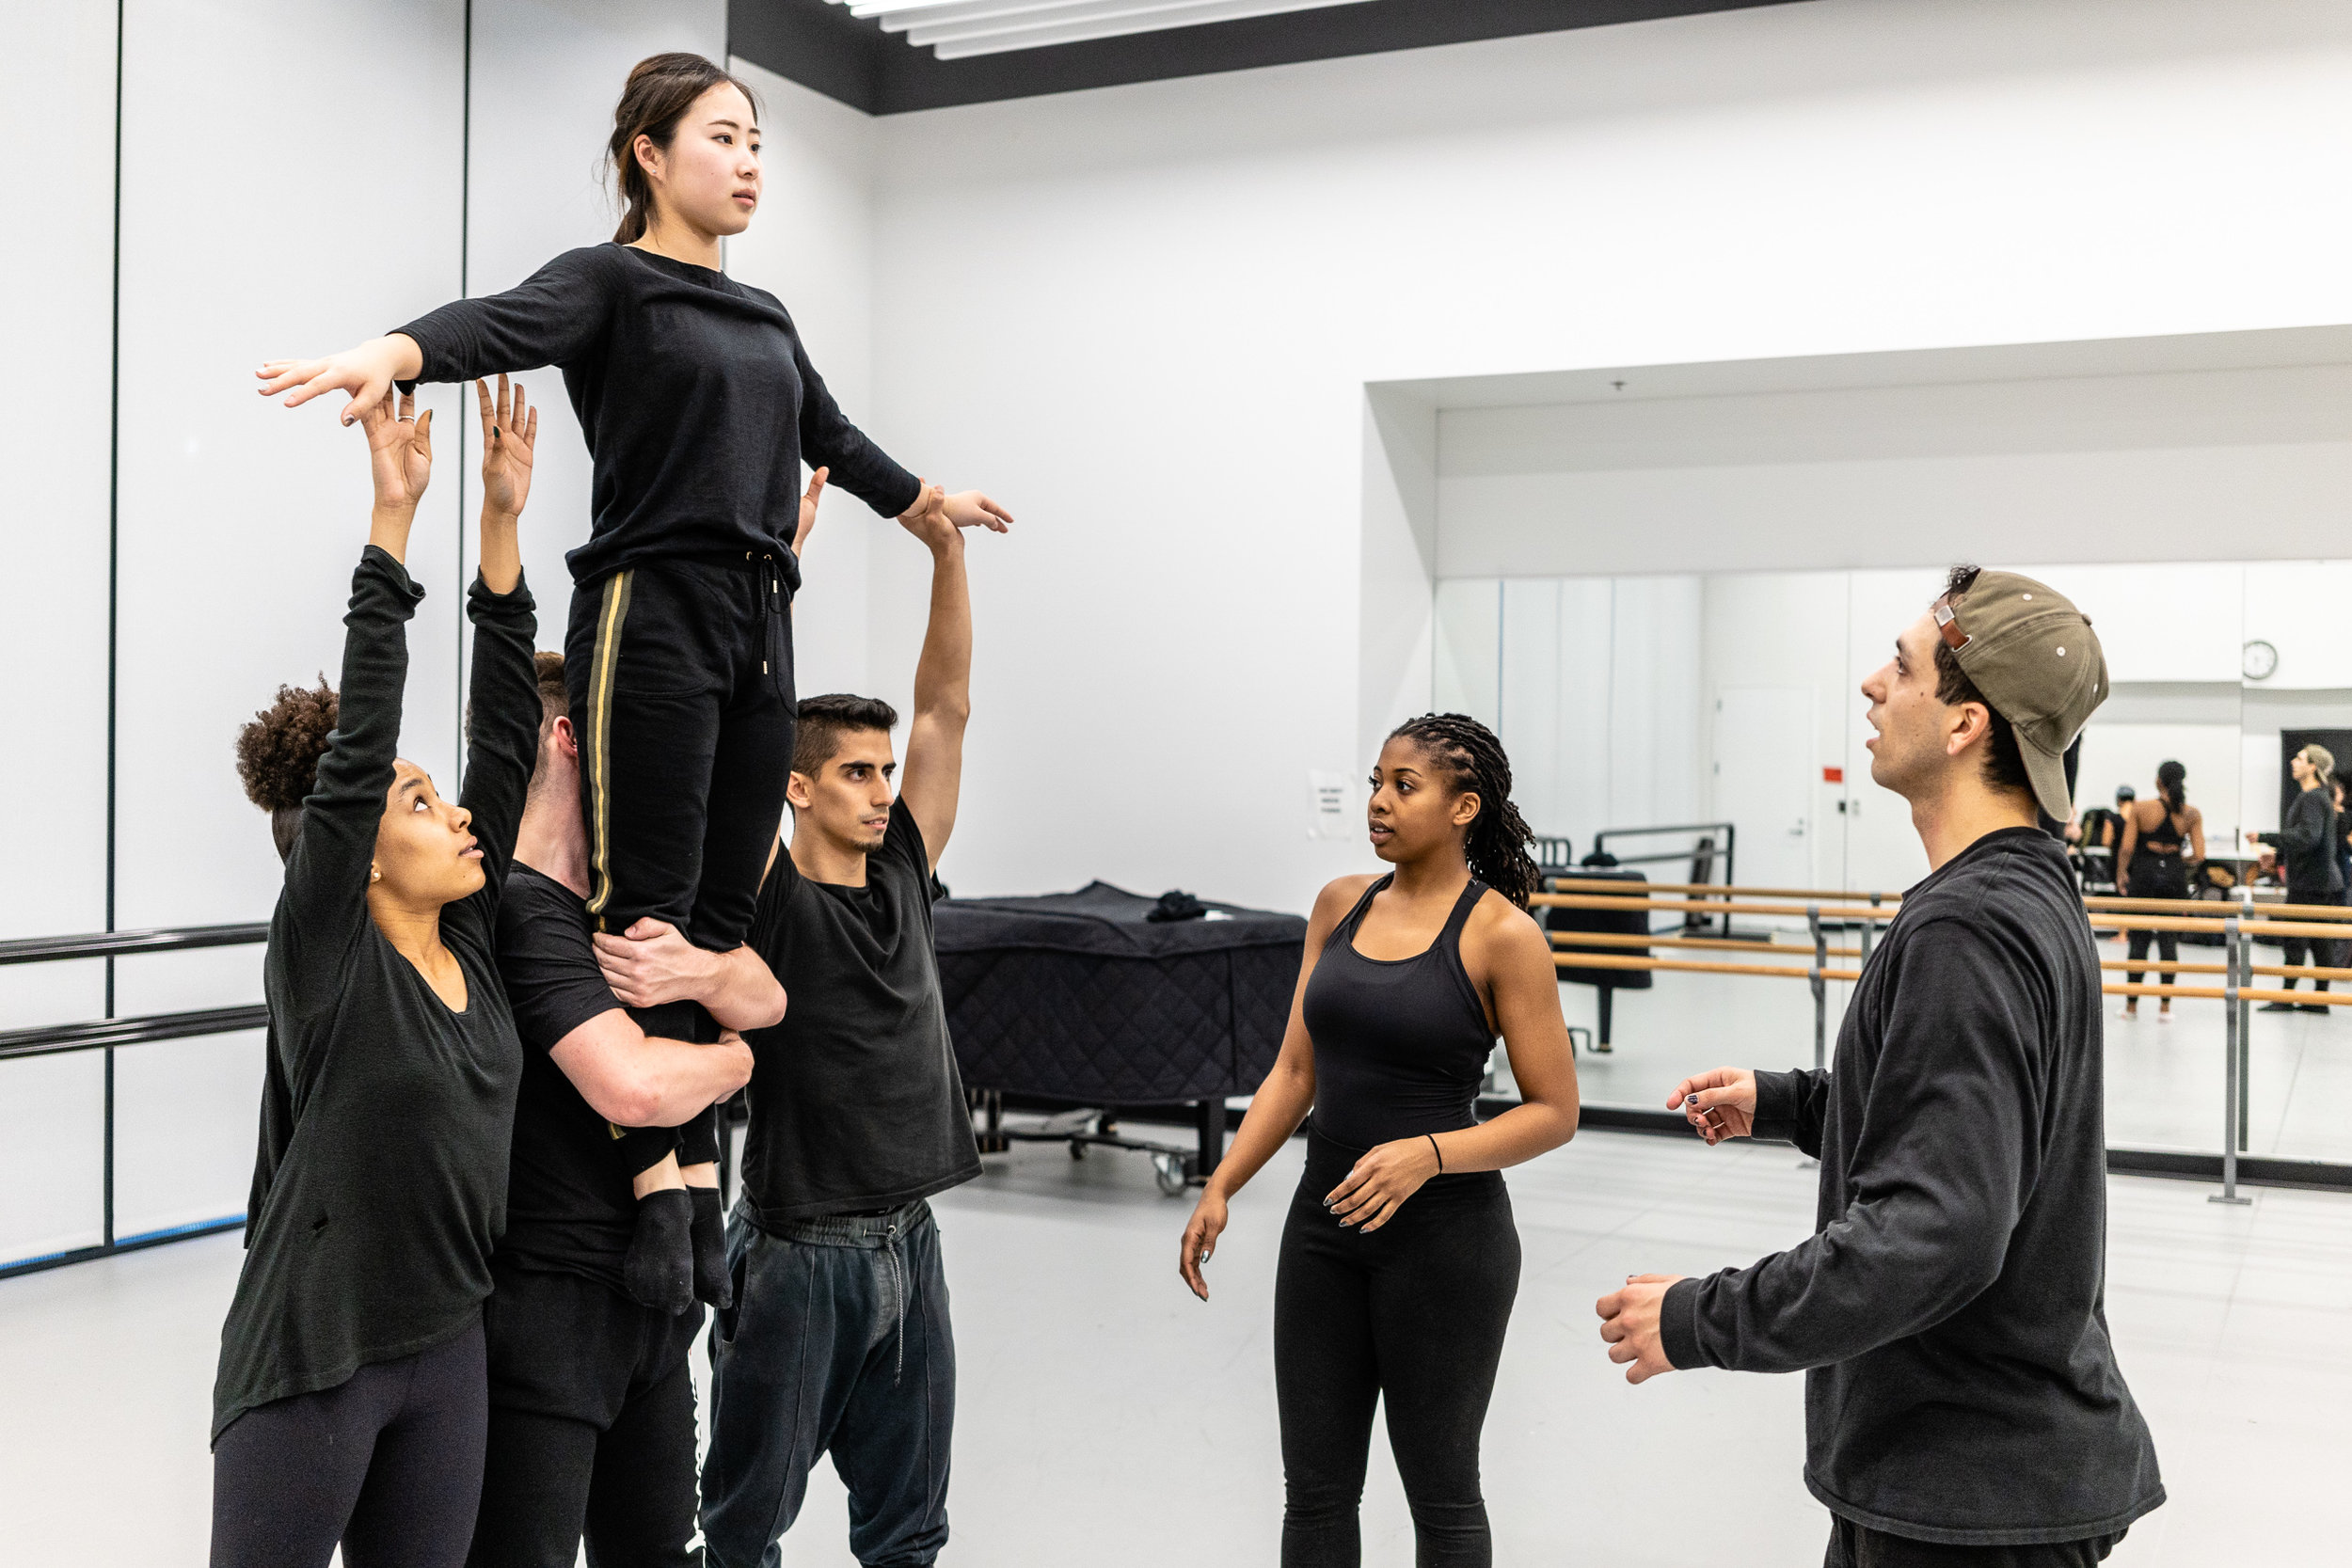 SMC dance majors hold Yurino Niyama aloft as student choreographer Erik Fine (in baseball cap) adjusts their movement in SMC's Core Performance Center on Tuesday, Feb. 26, 2019. Fine is rehearsing his new work, titled by the number seven in tally marks, which will premiere at Synapse Dance Theater at the Broad Stage at SMC's Performing Arts Center campus on Friday and Saturday, May 24 and 25. (Glenn Zucman/The Corsair)